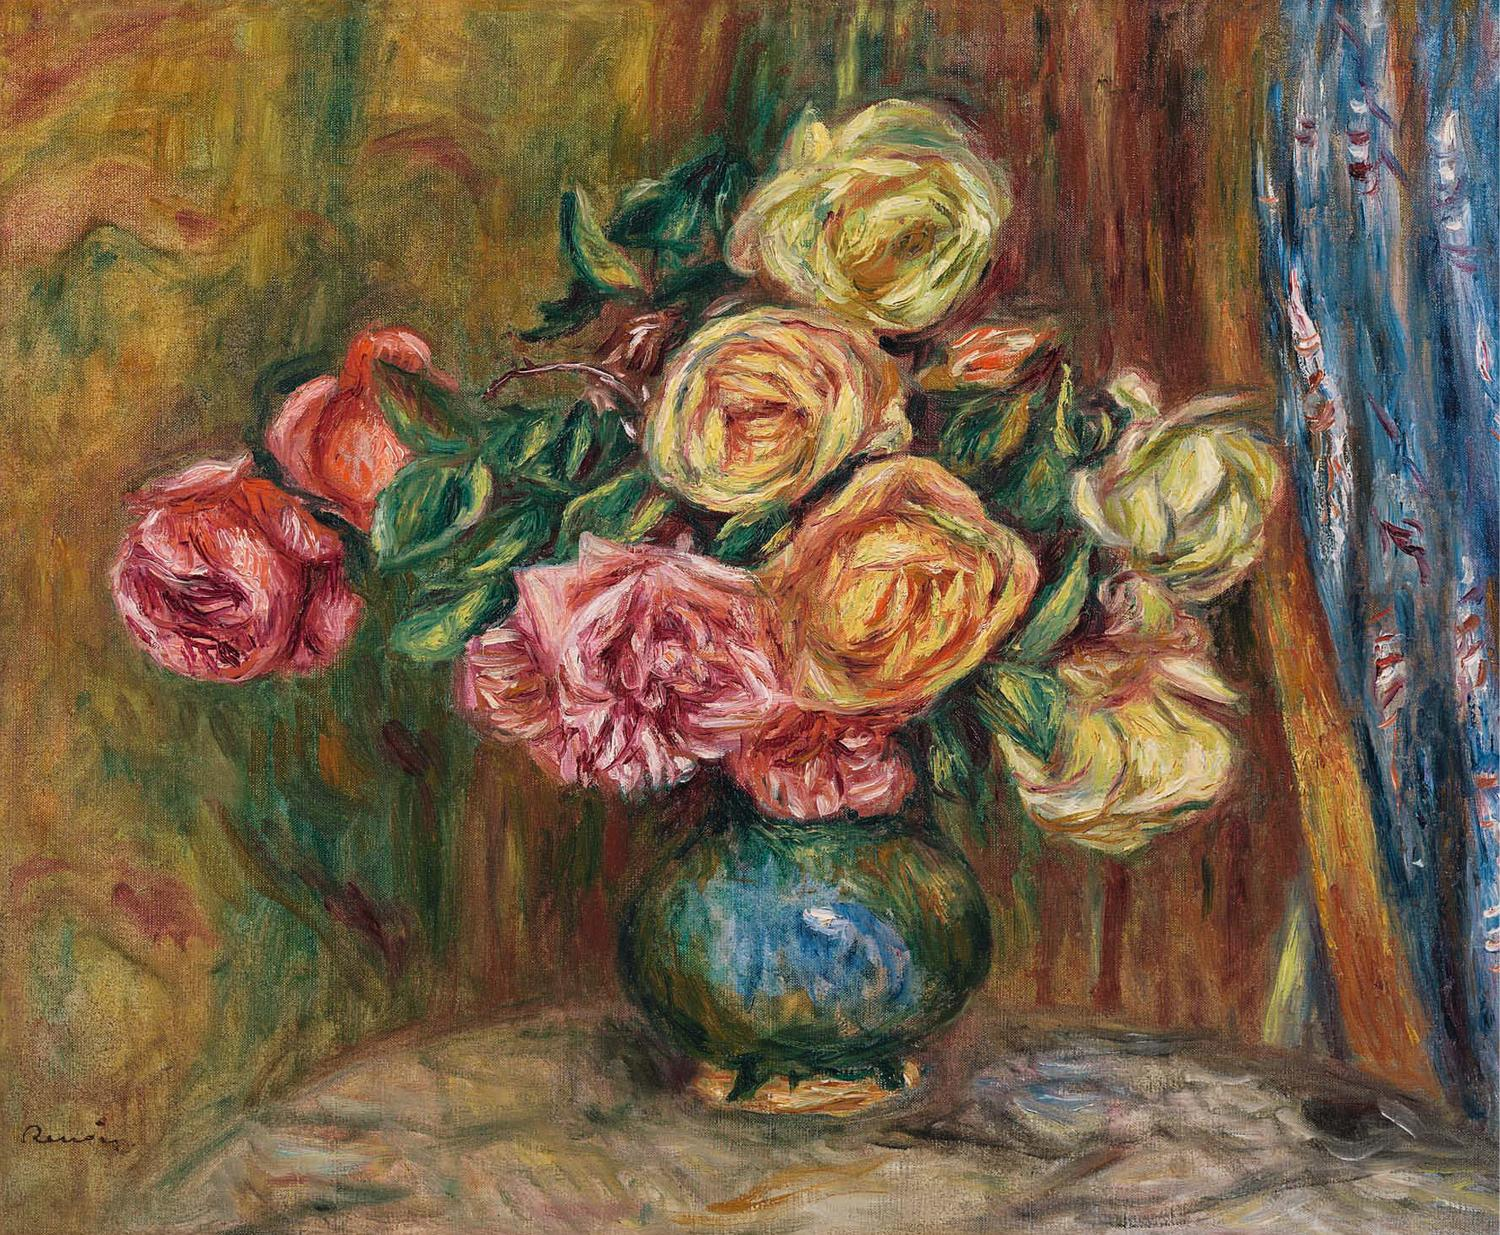 La Vie En Rose French Paintings 1840 1940 By Artsolution Sprl Issuu